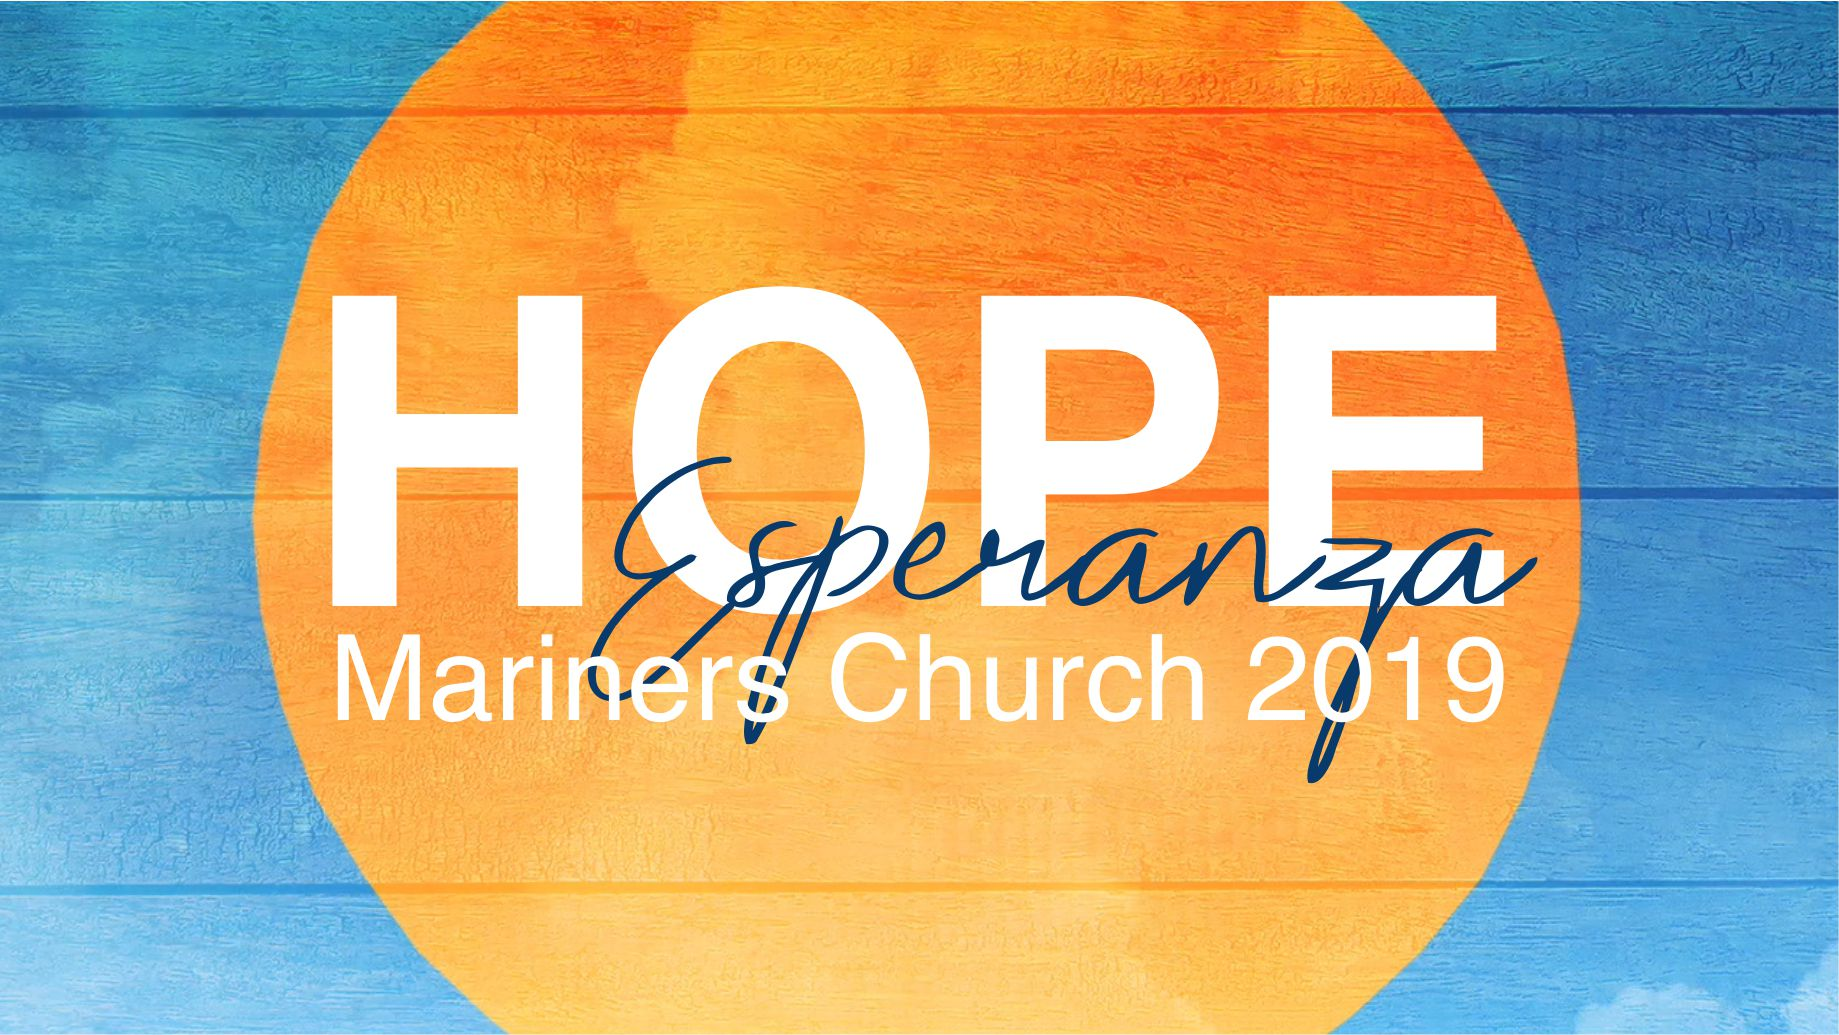 HOPE: Mariners Church 2019